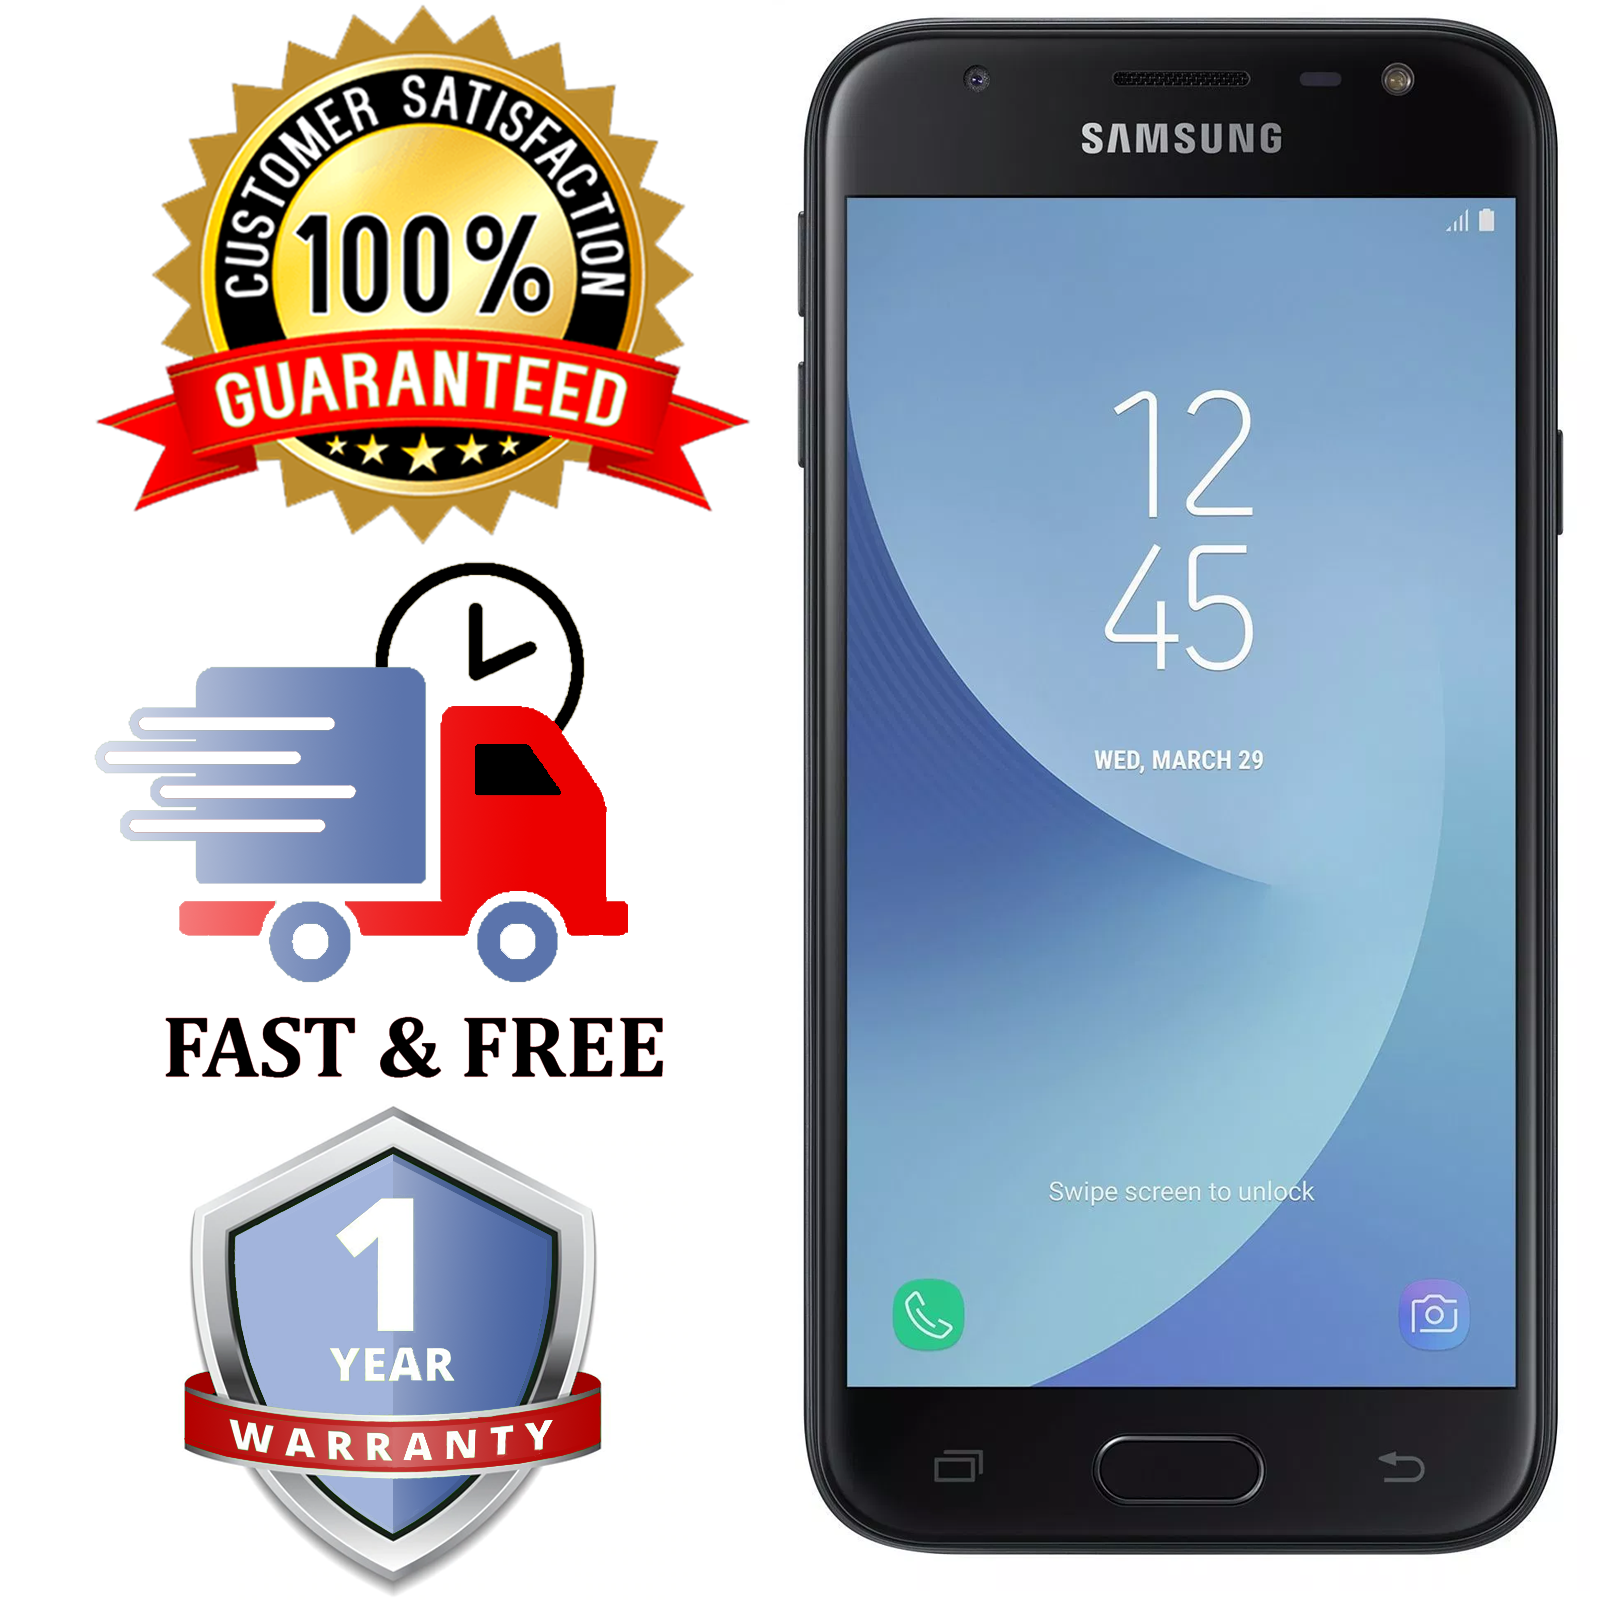 Android Phone - SAMSUNG PHONE GALAXY J3 2017-Black 16GB Android Mobile Phone |Unlocked |SIM FREE